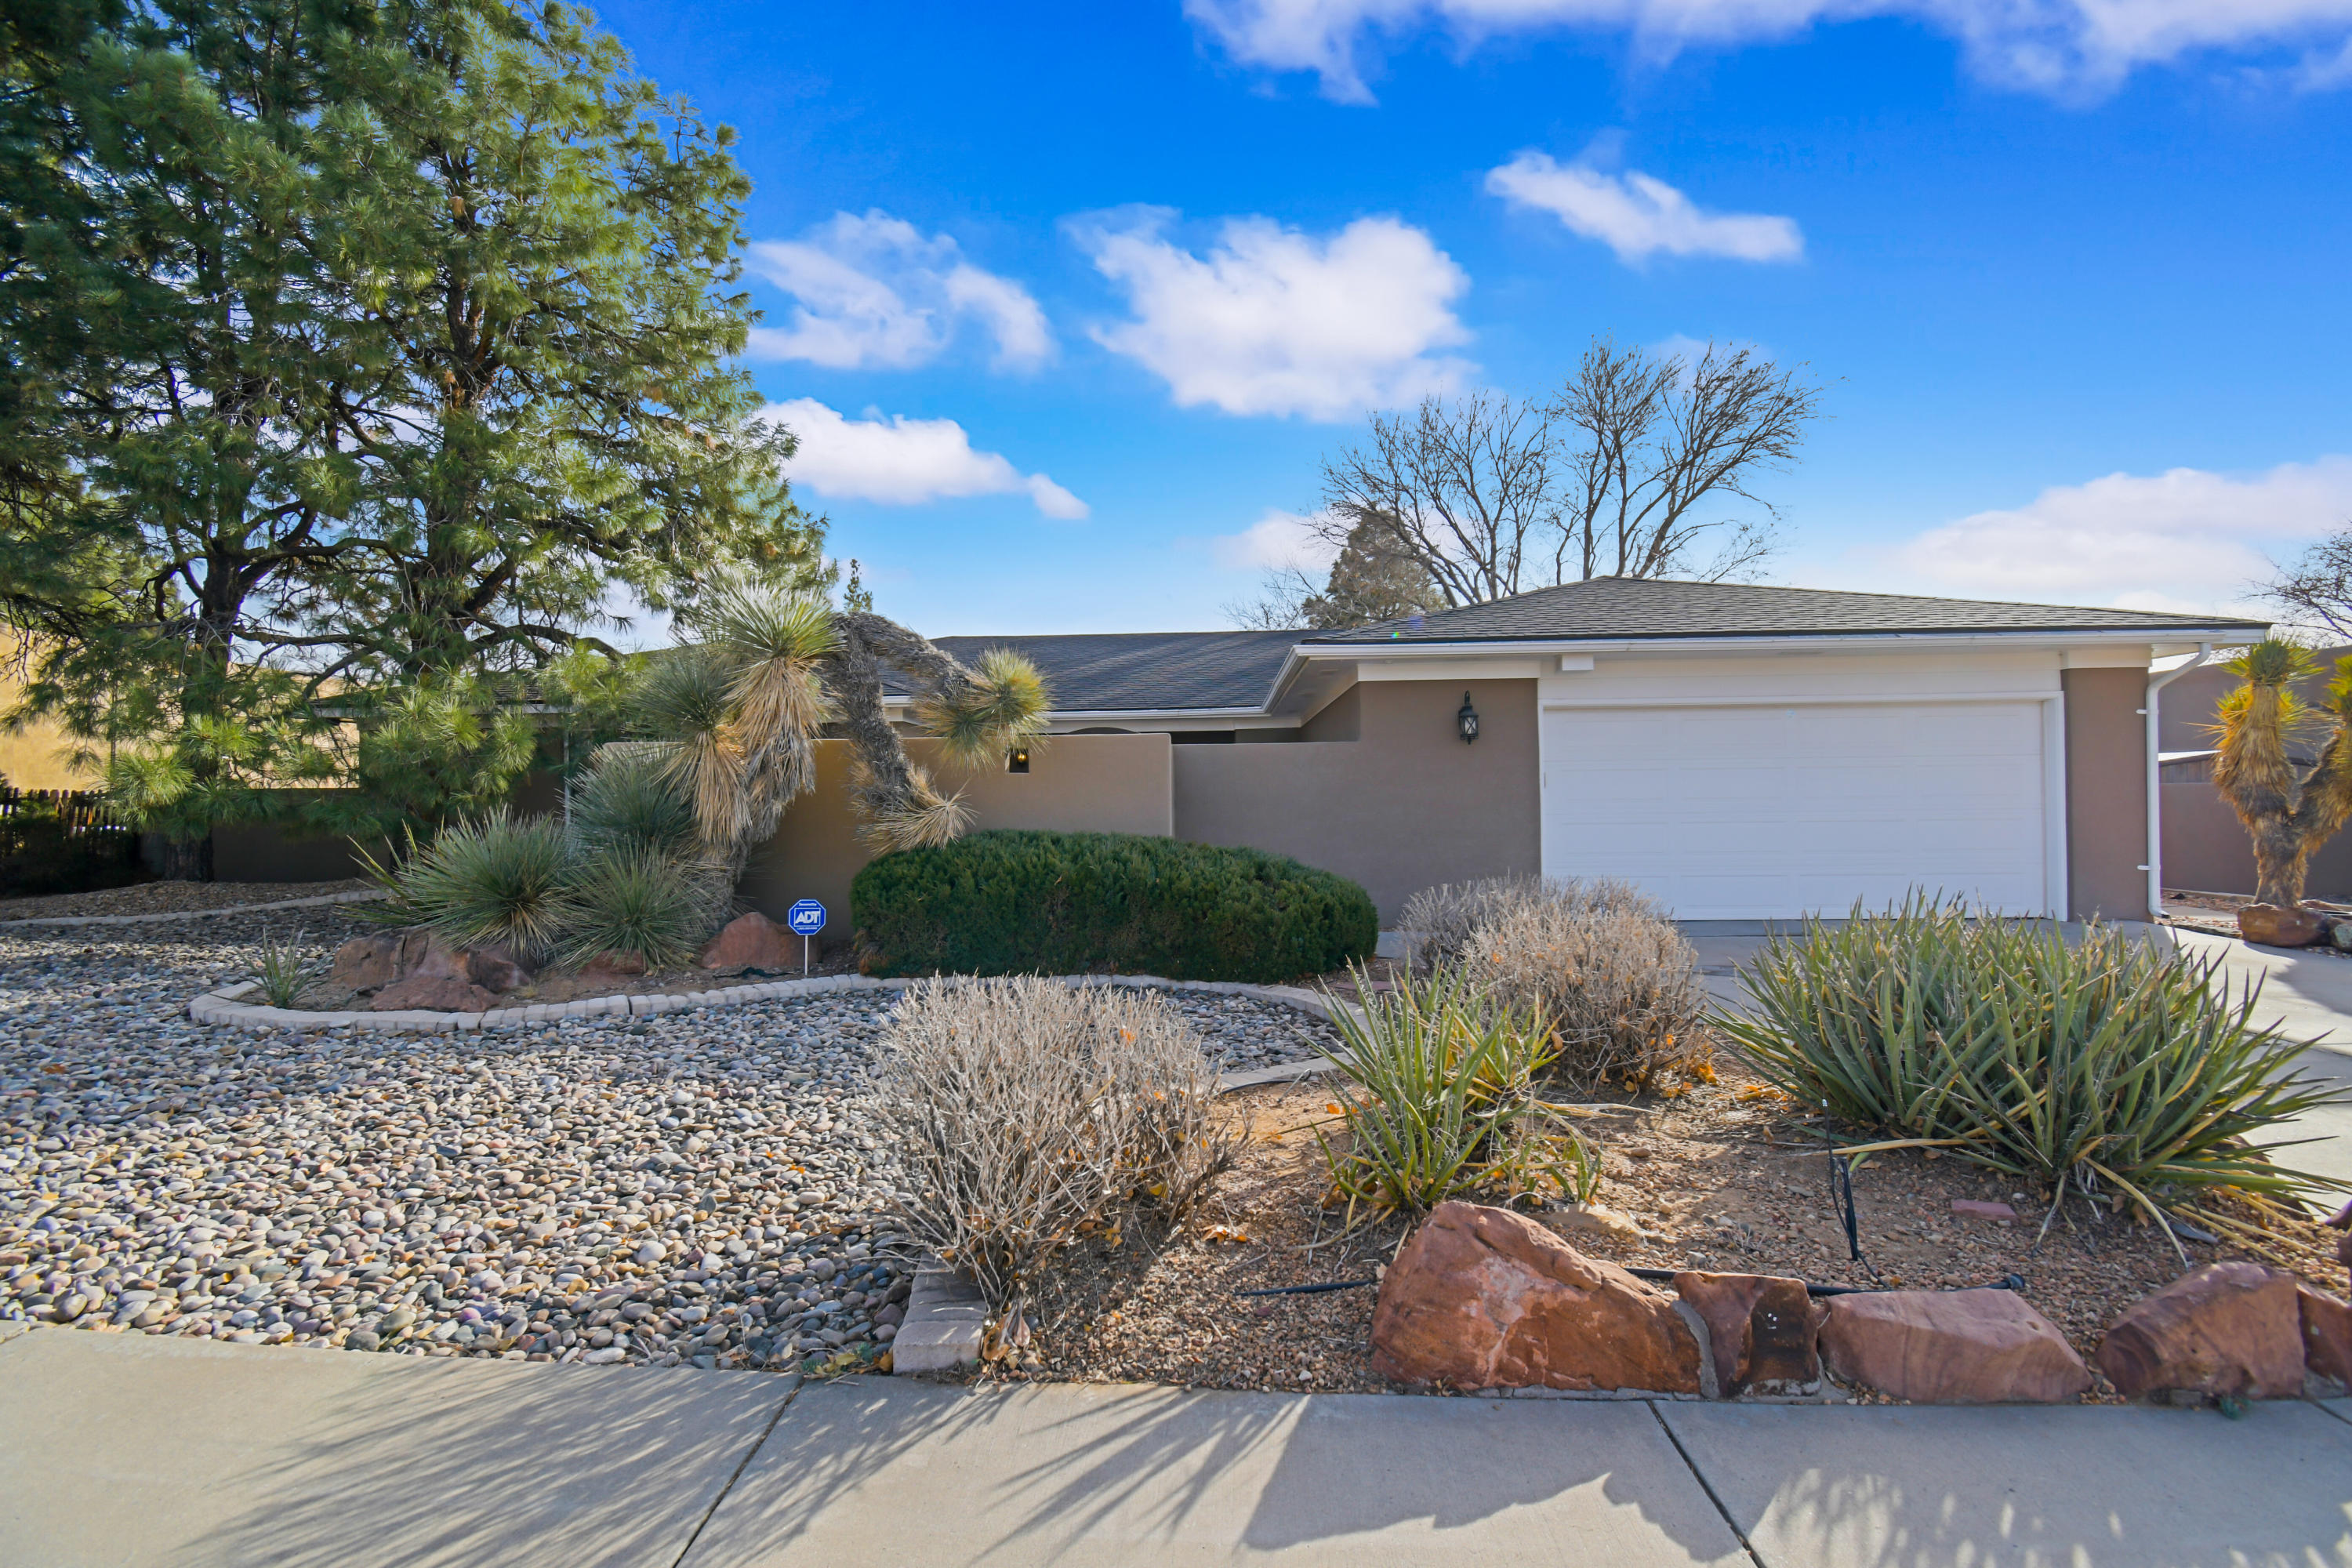 Beautiful Bear Canyon! This custom single story custom Mossman home has a bright and open front foyer entry. The living room has access to a formal dining room & sunroom. The  greatroom boasts a fireplace and built-in cabinets. Enjoy the eat-in country kitchen w/breakfast nook & service room. 4 big bedrooms plus possible 5th bedroom/office & bath. This house has great storage & lots of light along with an extra wide lot with patios & more! Make an appointment to see it today!